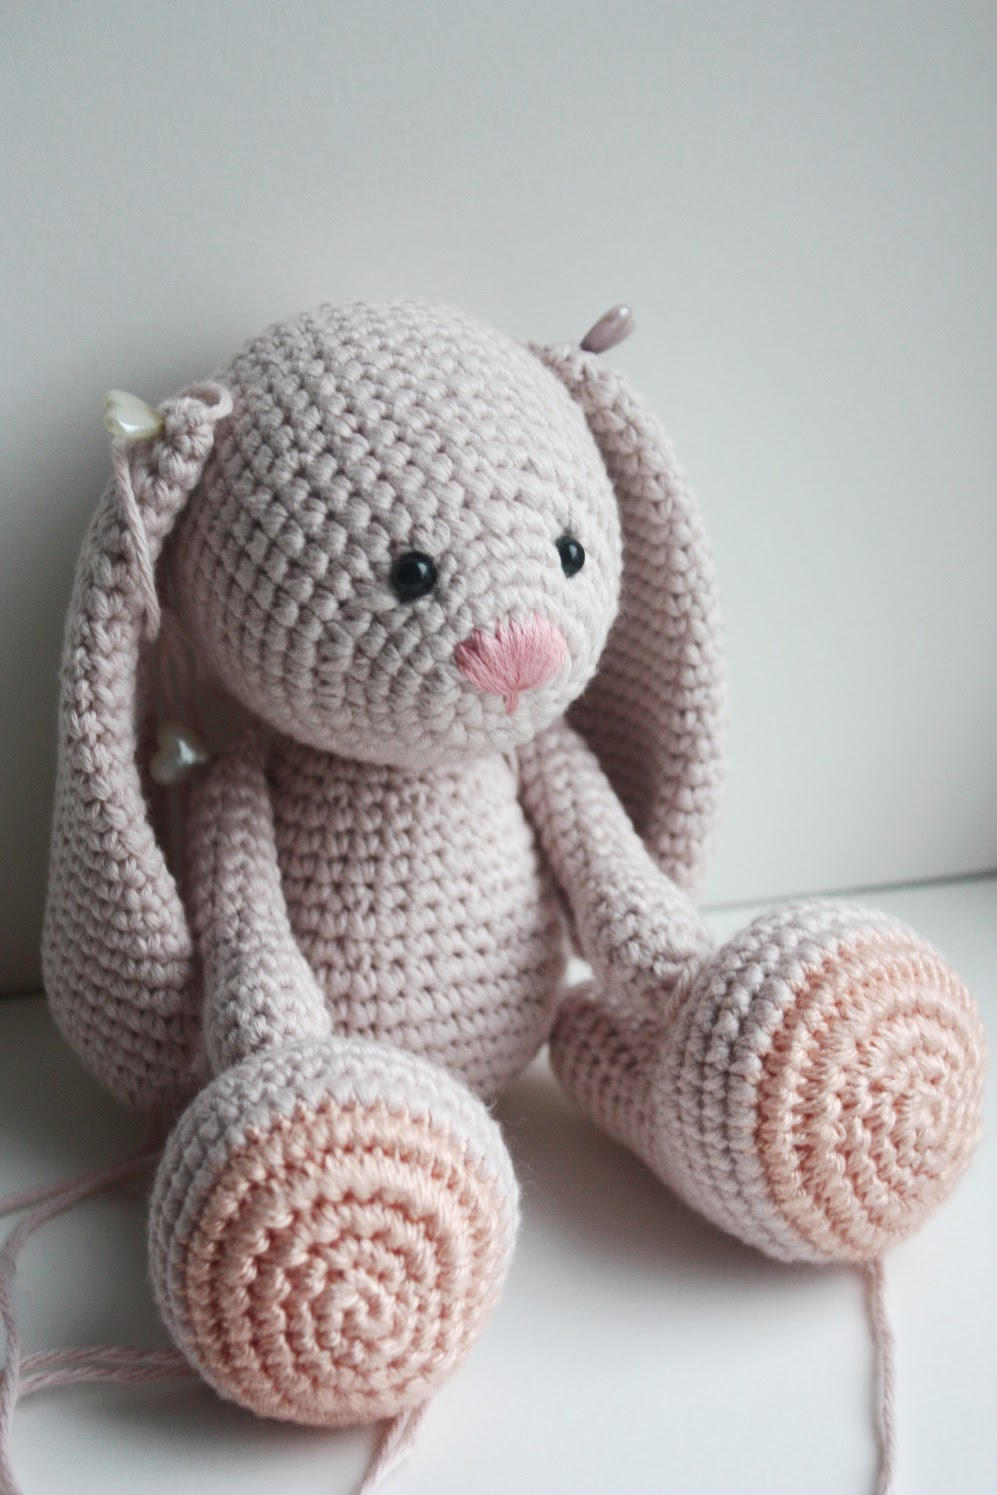 Amigurumi To Go Easter Egg Bunny : Happyamigurumi: New design in process: Little Amigurumi Bunny